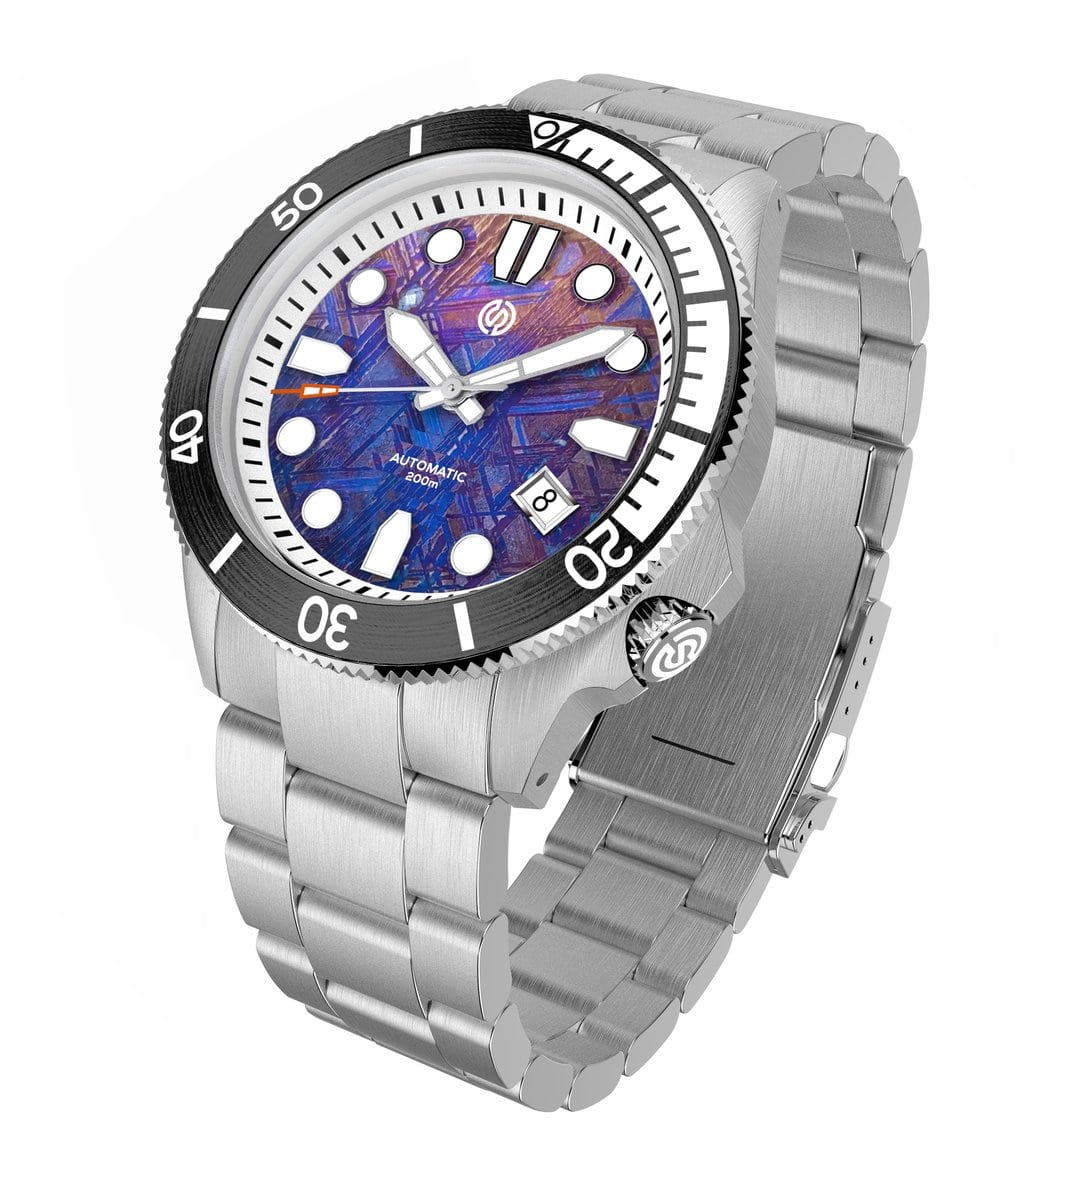 Image of the signum cuda diver watch with mosaic dial